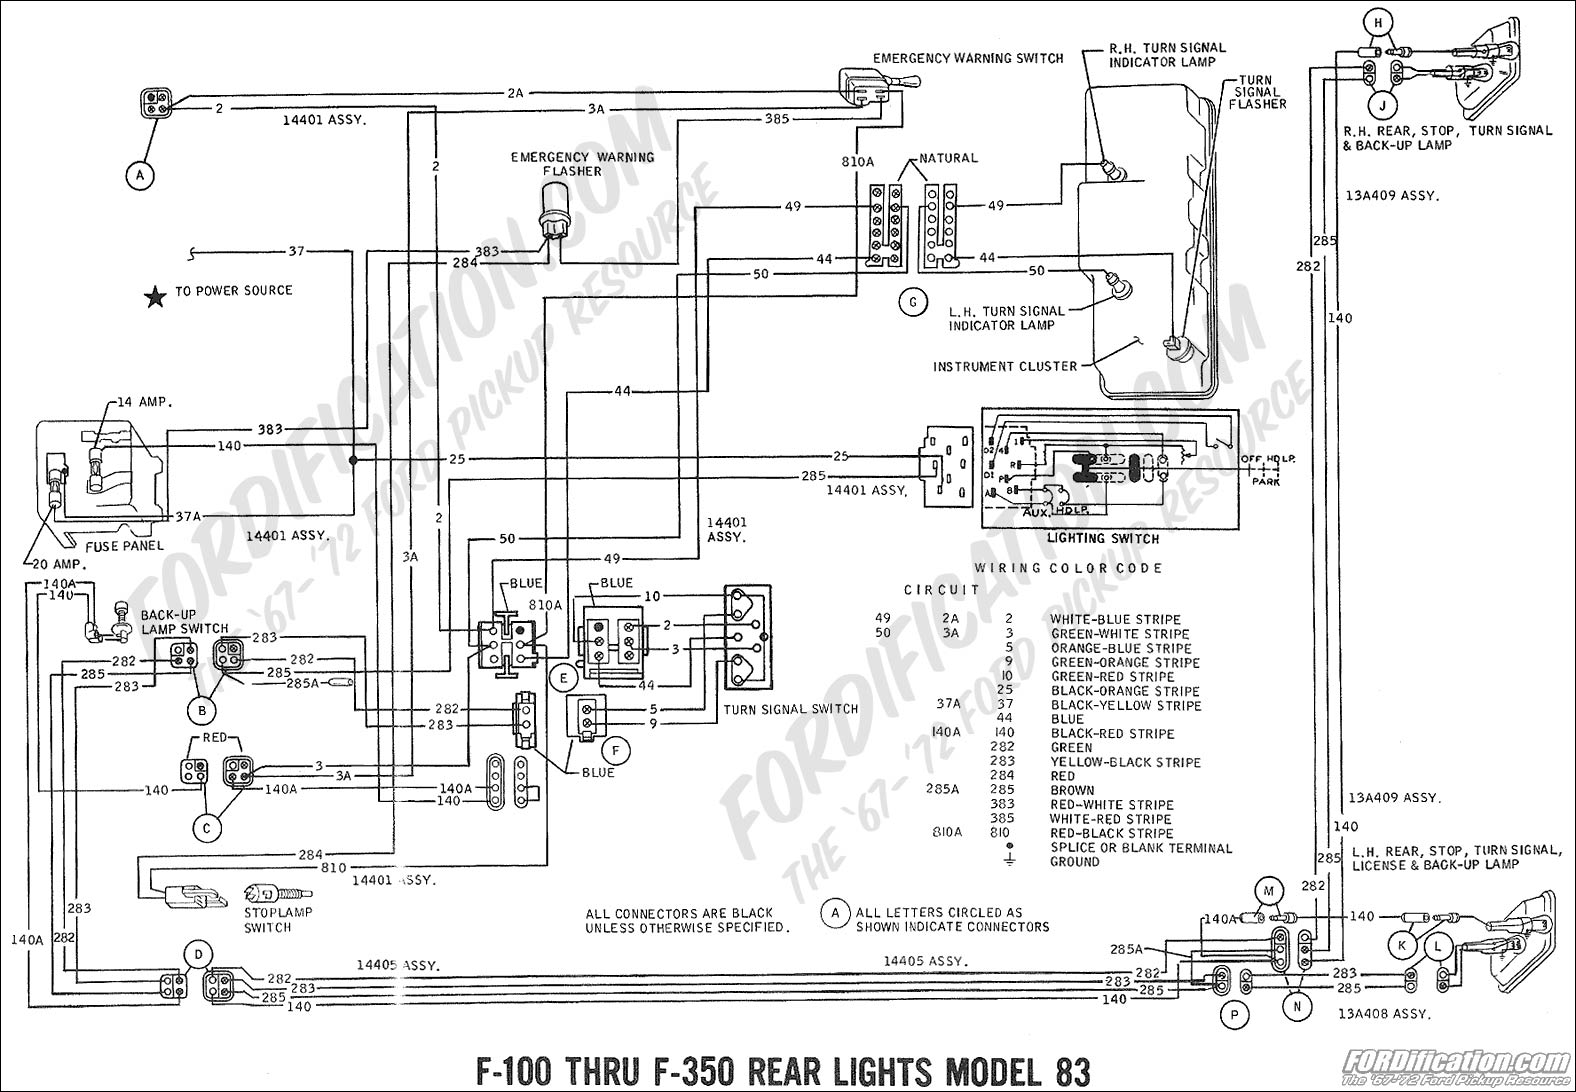 Ford F700 Distributor Wiring Schematics - Wiring Diagram & Fuse Box Truck Ford F Wiring Diagrams on 1985 dodge ram 3500 wiring diagram, 1985 ford f800 parts, 1985 chevrolet silverado wiring diagram, 1990 ford f800 wiring diagram, 1985 ford f800 solenoid, 1985 ford f800 clutch, 1986 ford f800 wiring diagram, 1991 ford f800 wiring diagram,